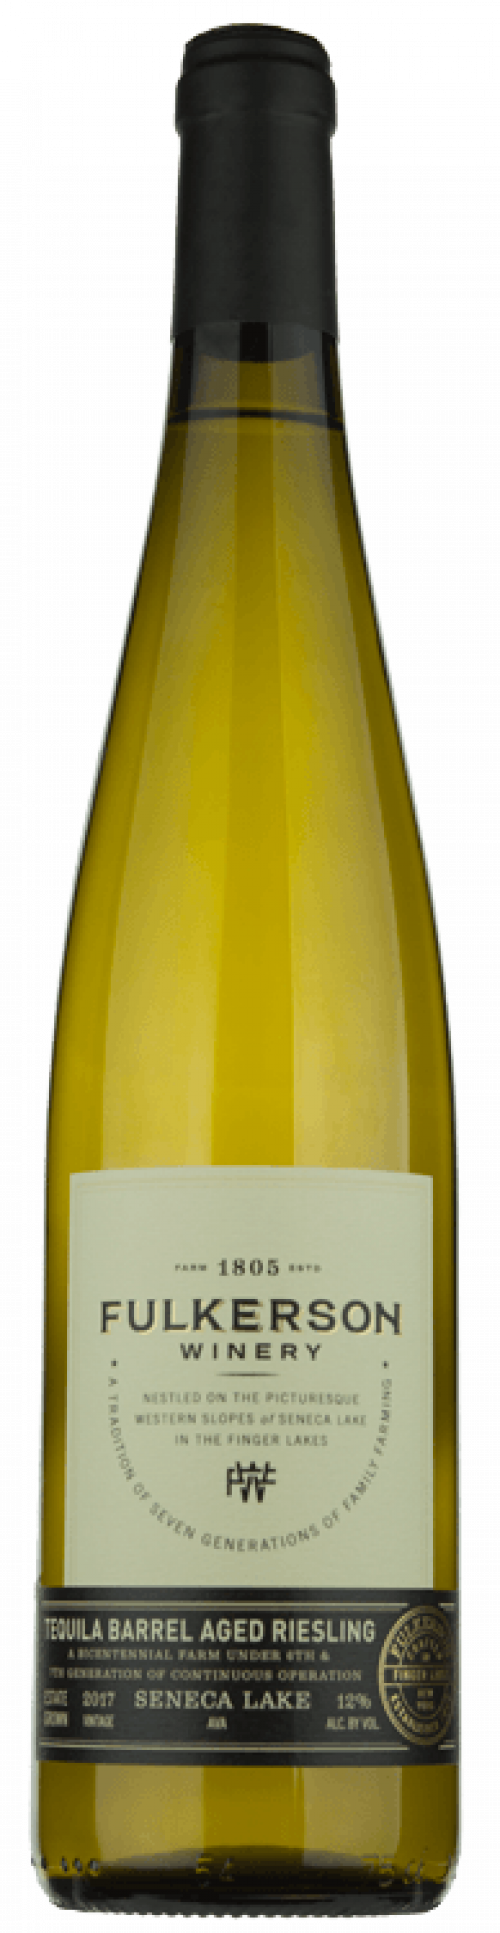 2017 Fulkerson Tequila Barrel Aged Riesling 750ml